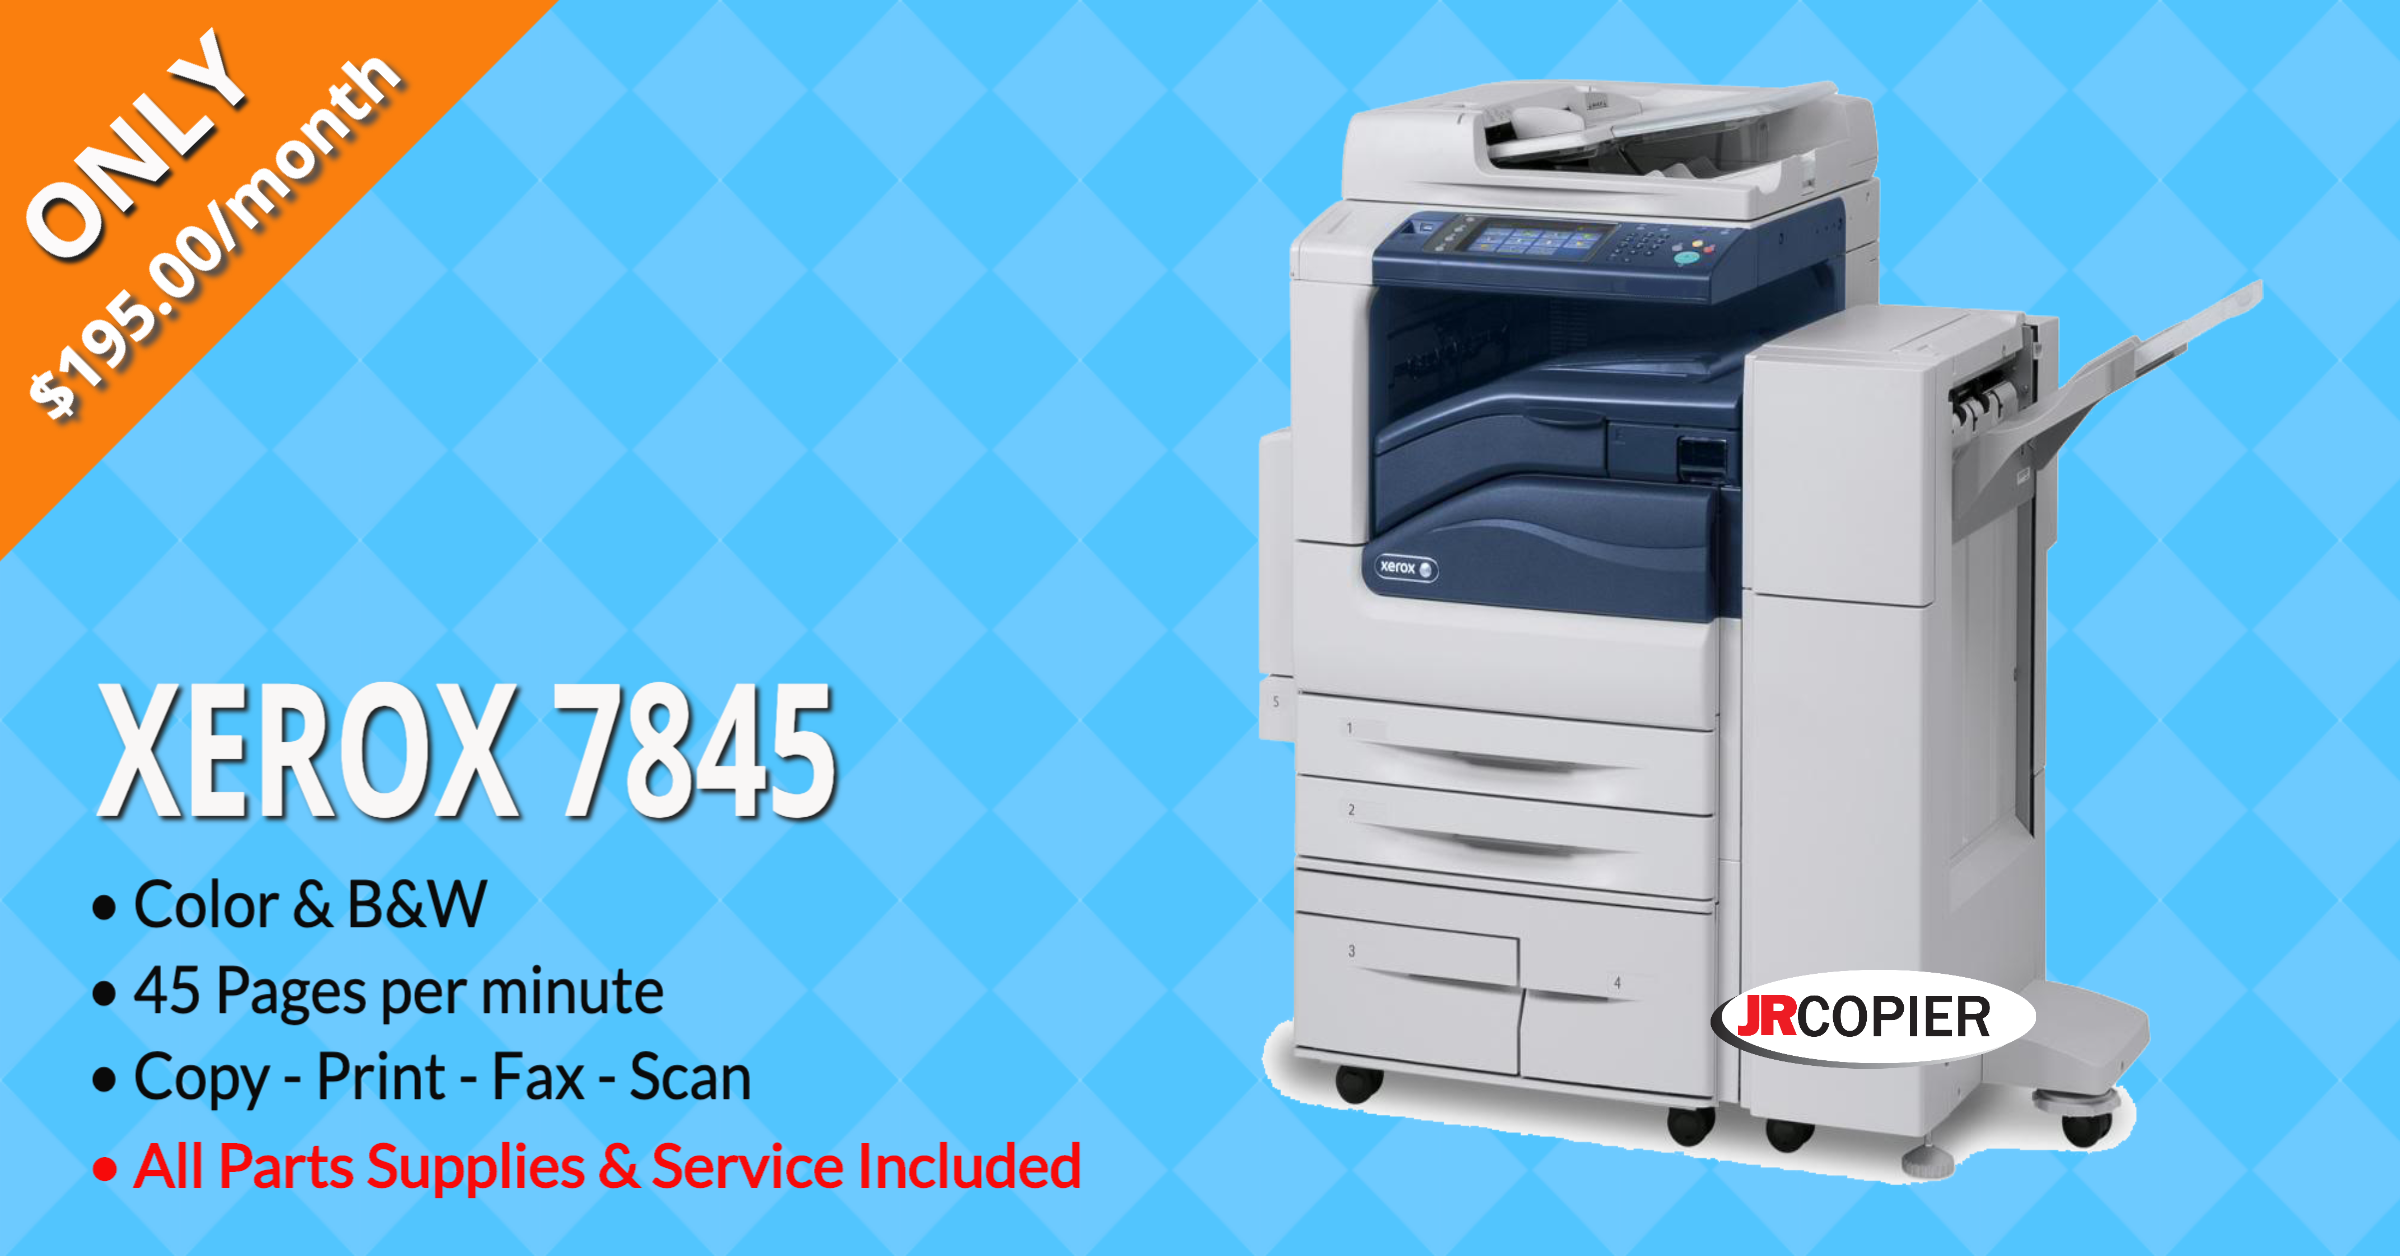 Copy Machine Rental 46106, 46131, 46142, 46143, 46151, 46184